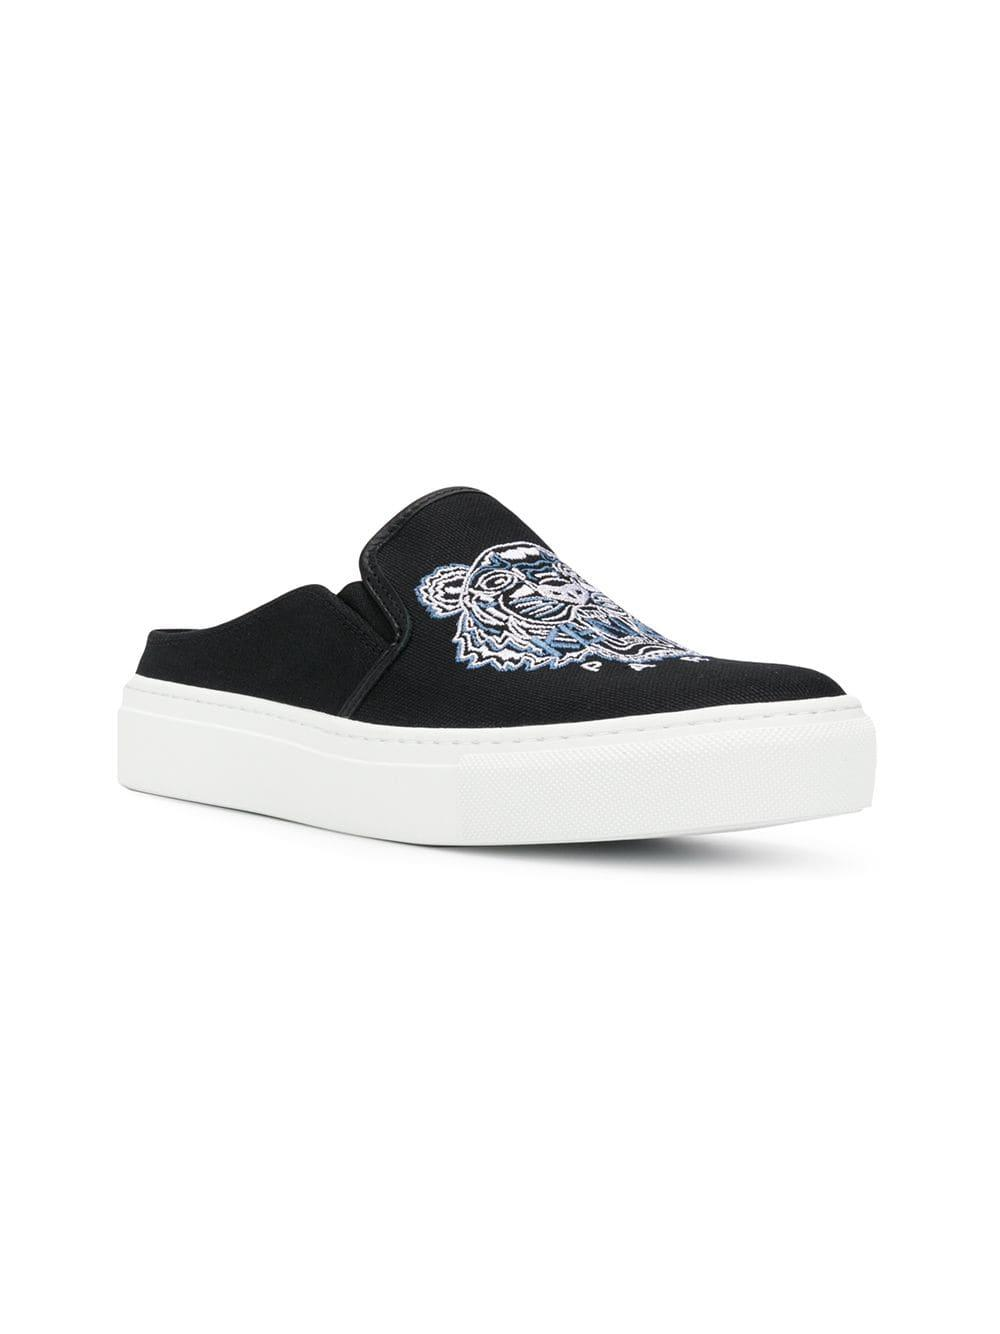 27f1b7b34 Lyst - Kenzo Tiger Slip-on Sneakers in Black